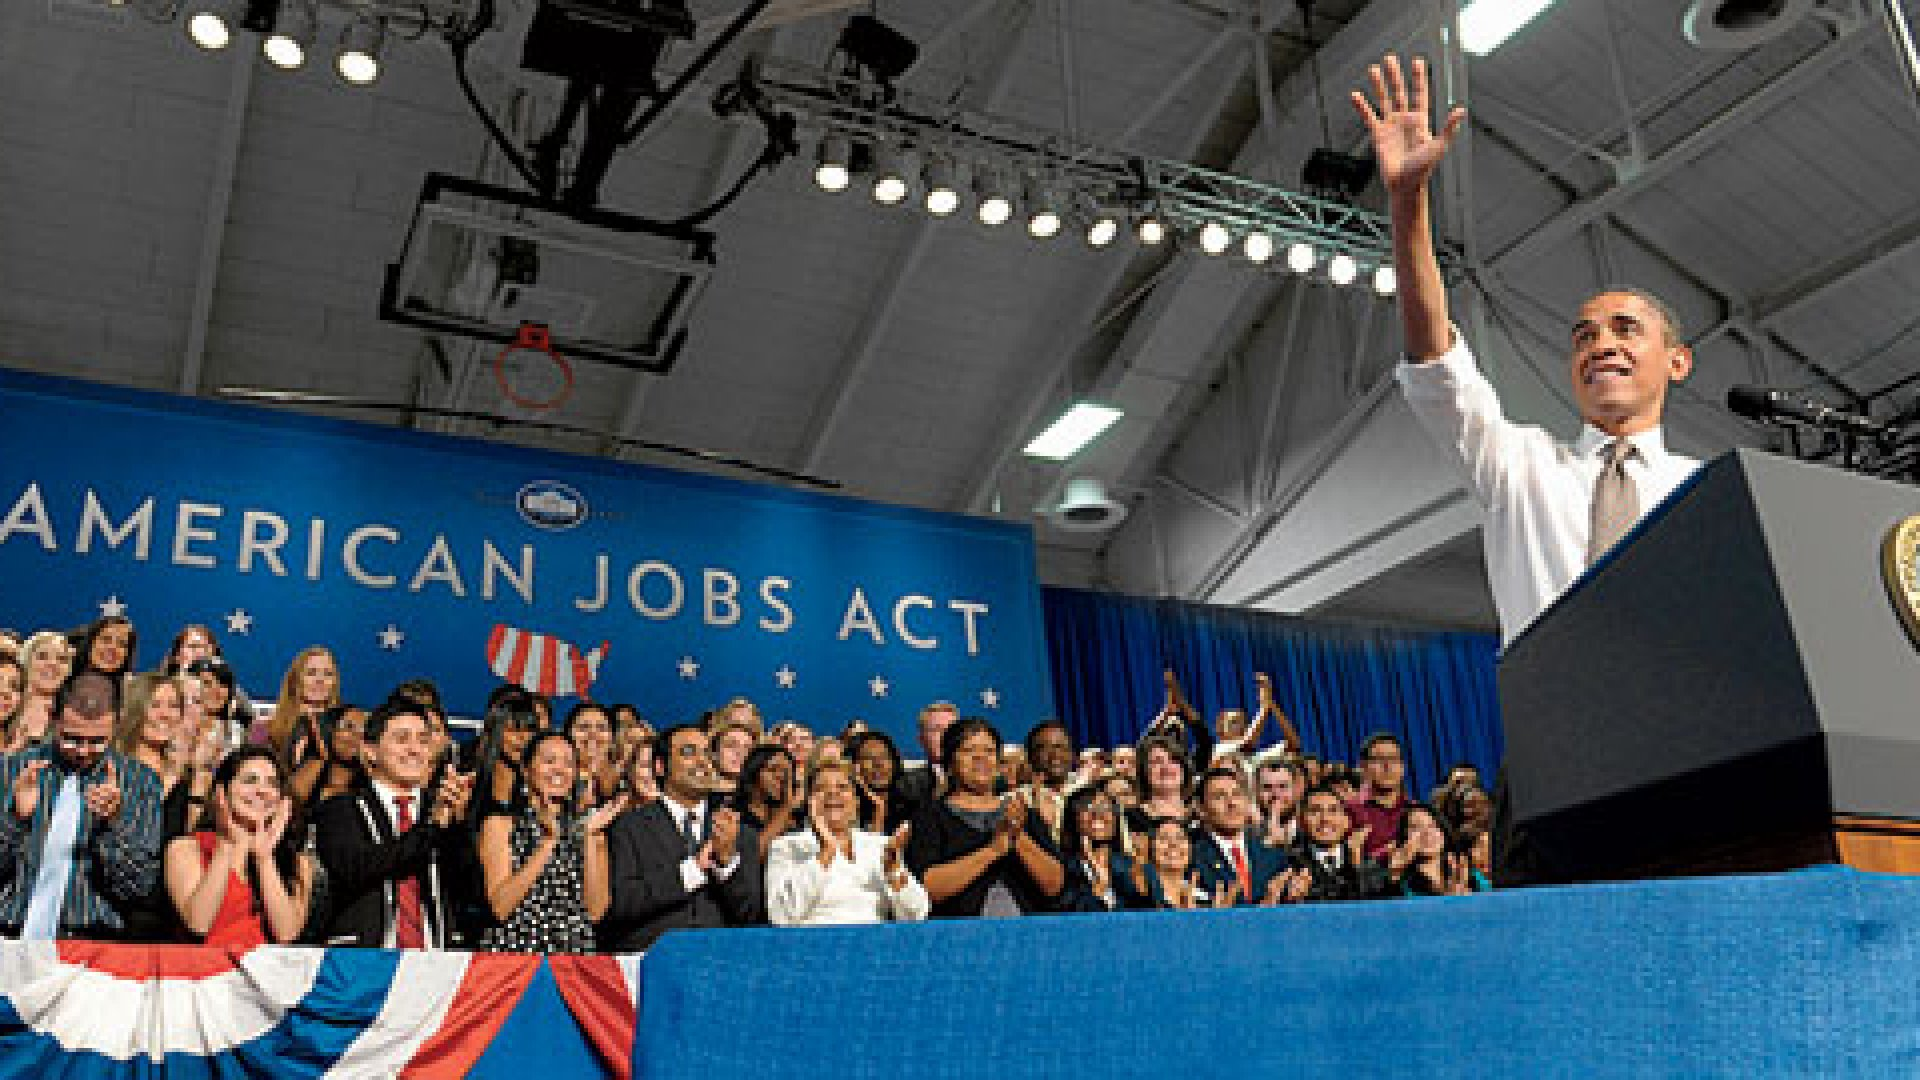 <b>Seal of Approval</b> President Obama's American Jobs Act includes one entrepreneur's proposal to boost crowdfunding.